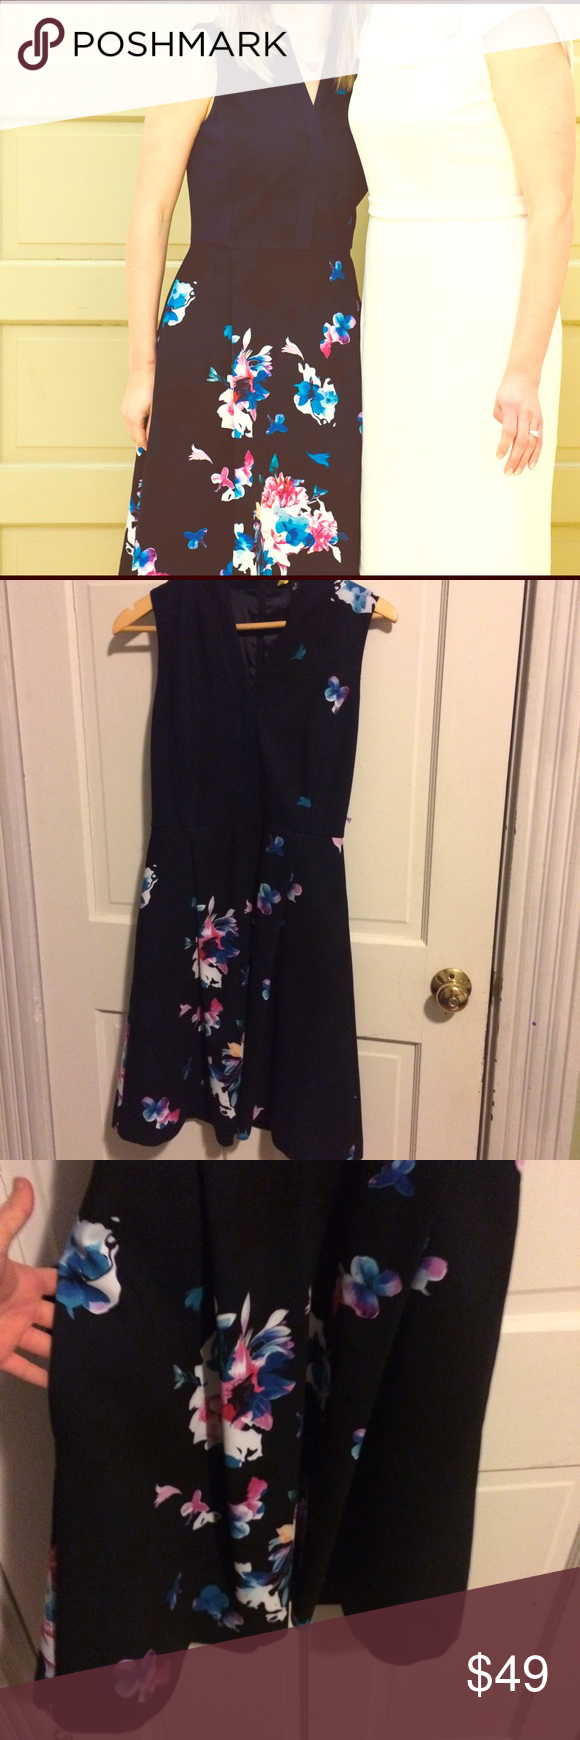 "Navy Ellen Tracy Floral Print Fit&Flare Navy stretch crepe dress with bright blossoms & black shadows, with side swam pockets! The best. Worn only once! 38 1/2"" length. True to size. Ellen Tracy Dresses"